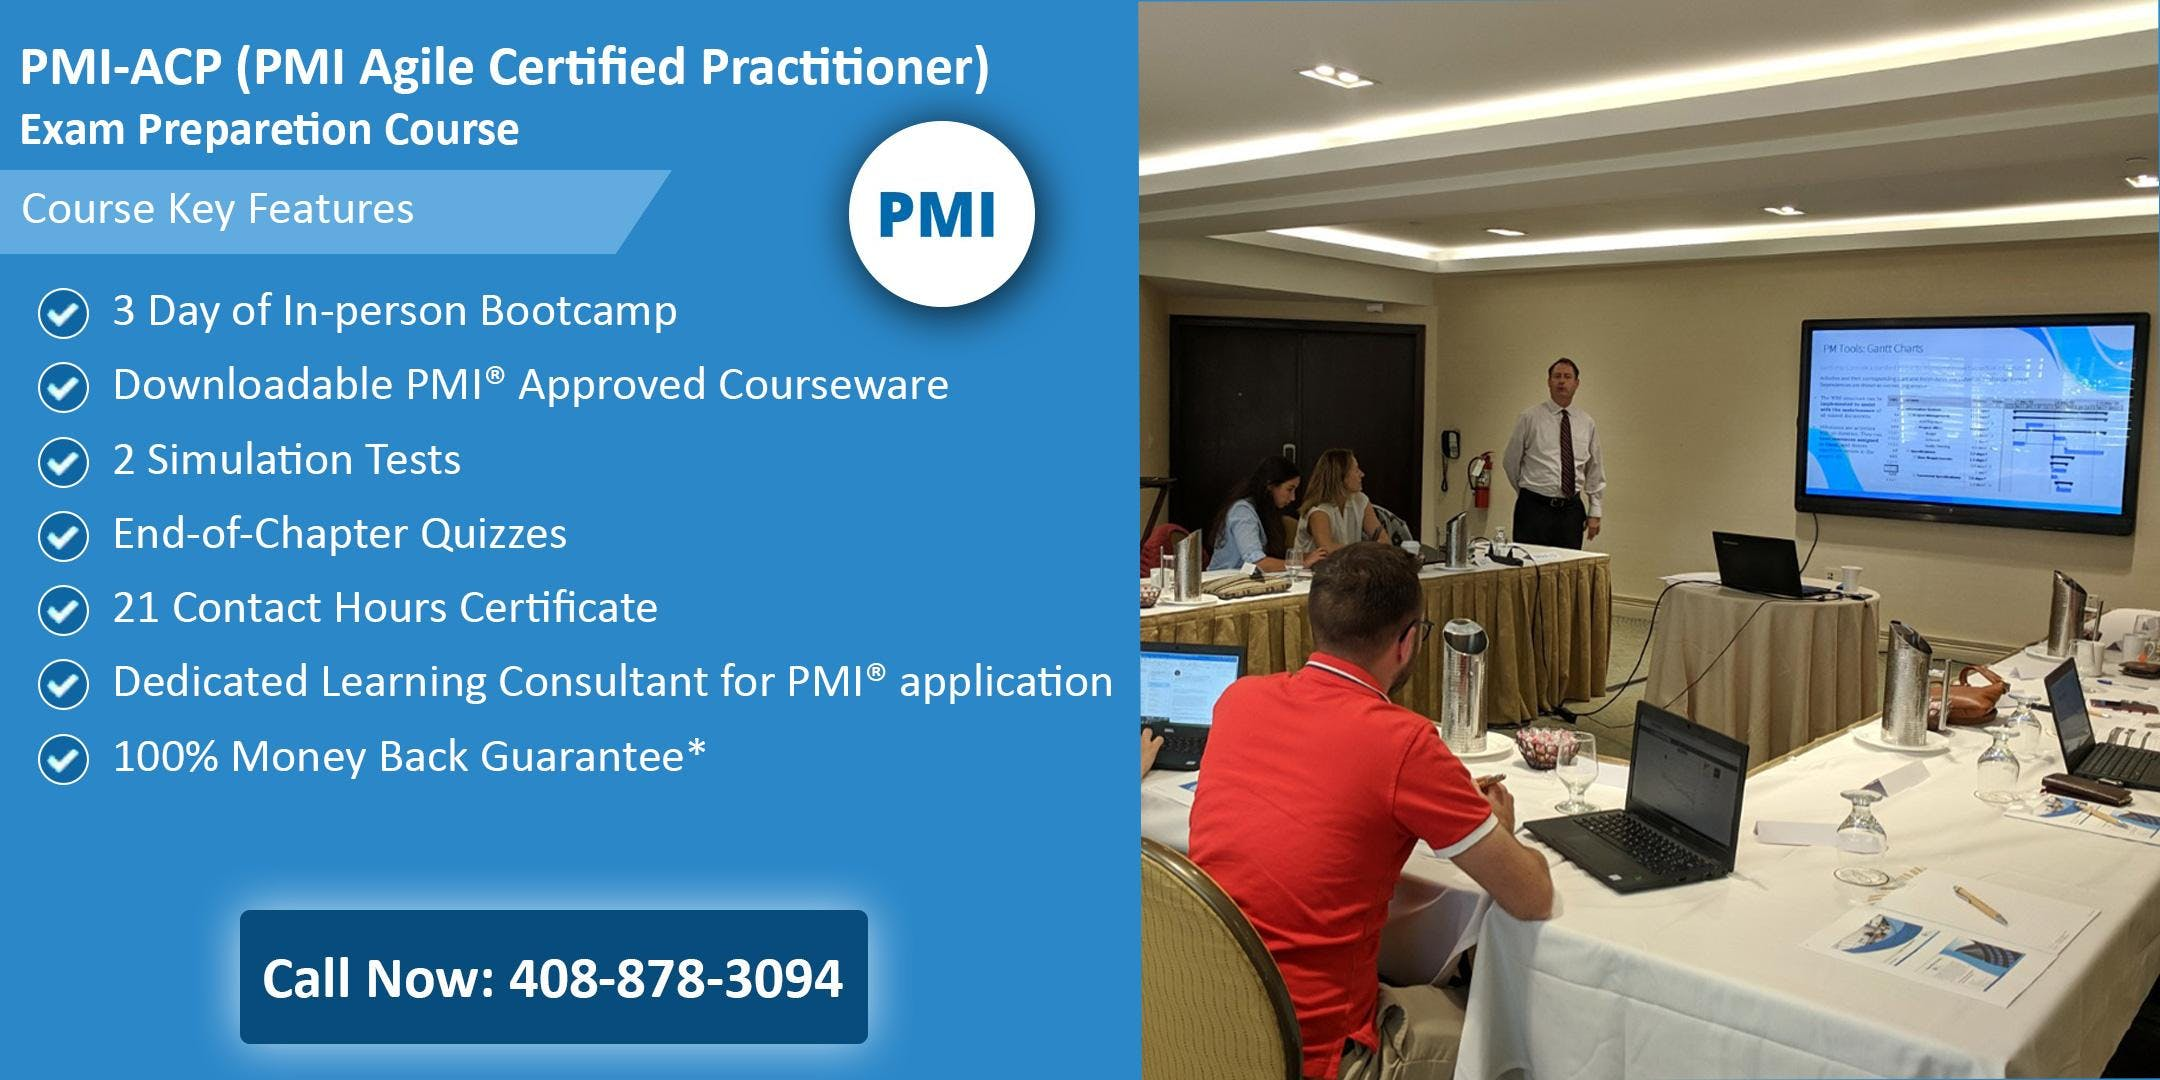 PMI-ACP (PMI Agile Certified Practitioner) Training In Mississauga, ON